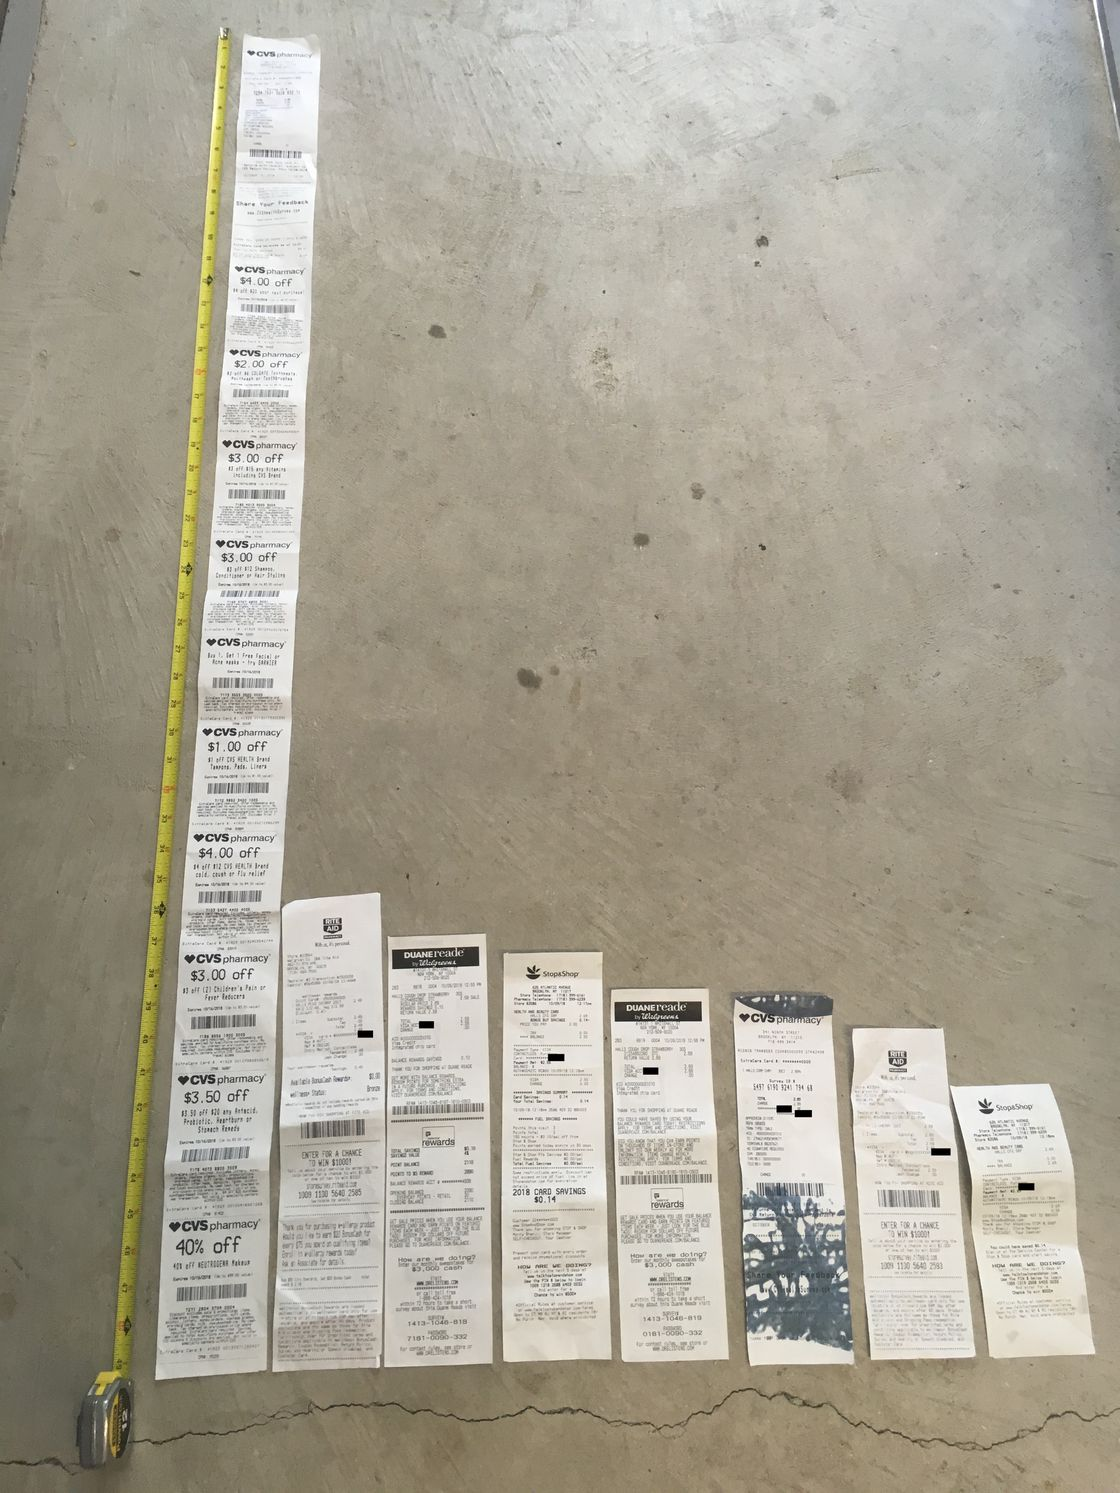 Cvs Pharmacy Coupons >> Blame Big Data for CVS's endless miles of receipts / Boing Boing